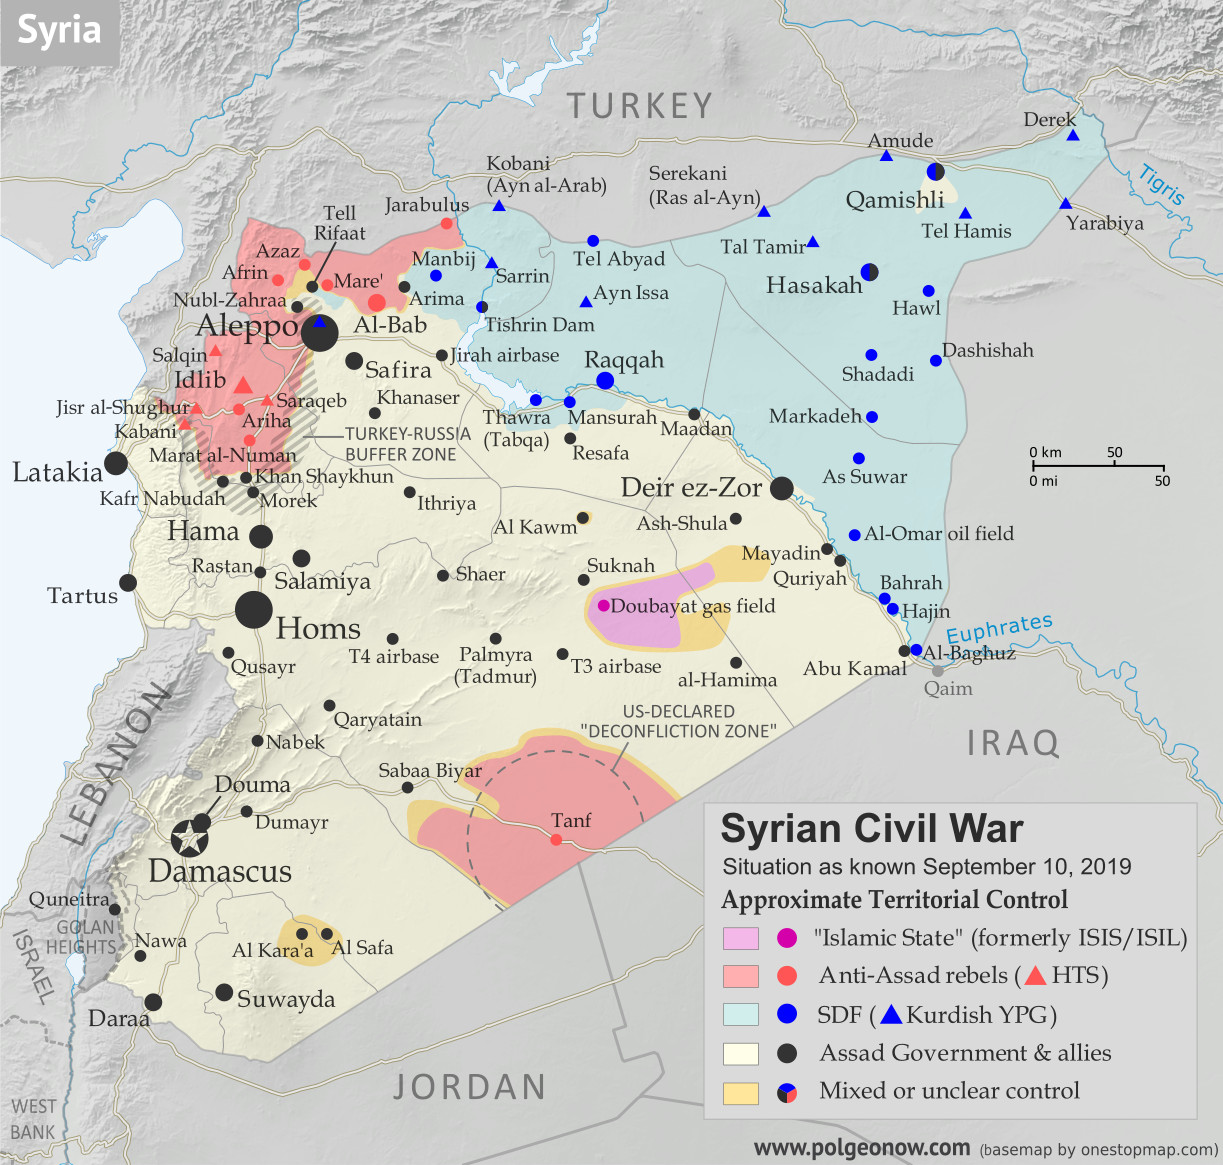 Syrian Civil War Map & Timeline - September 2019 - Political ...